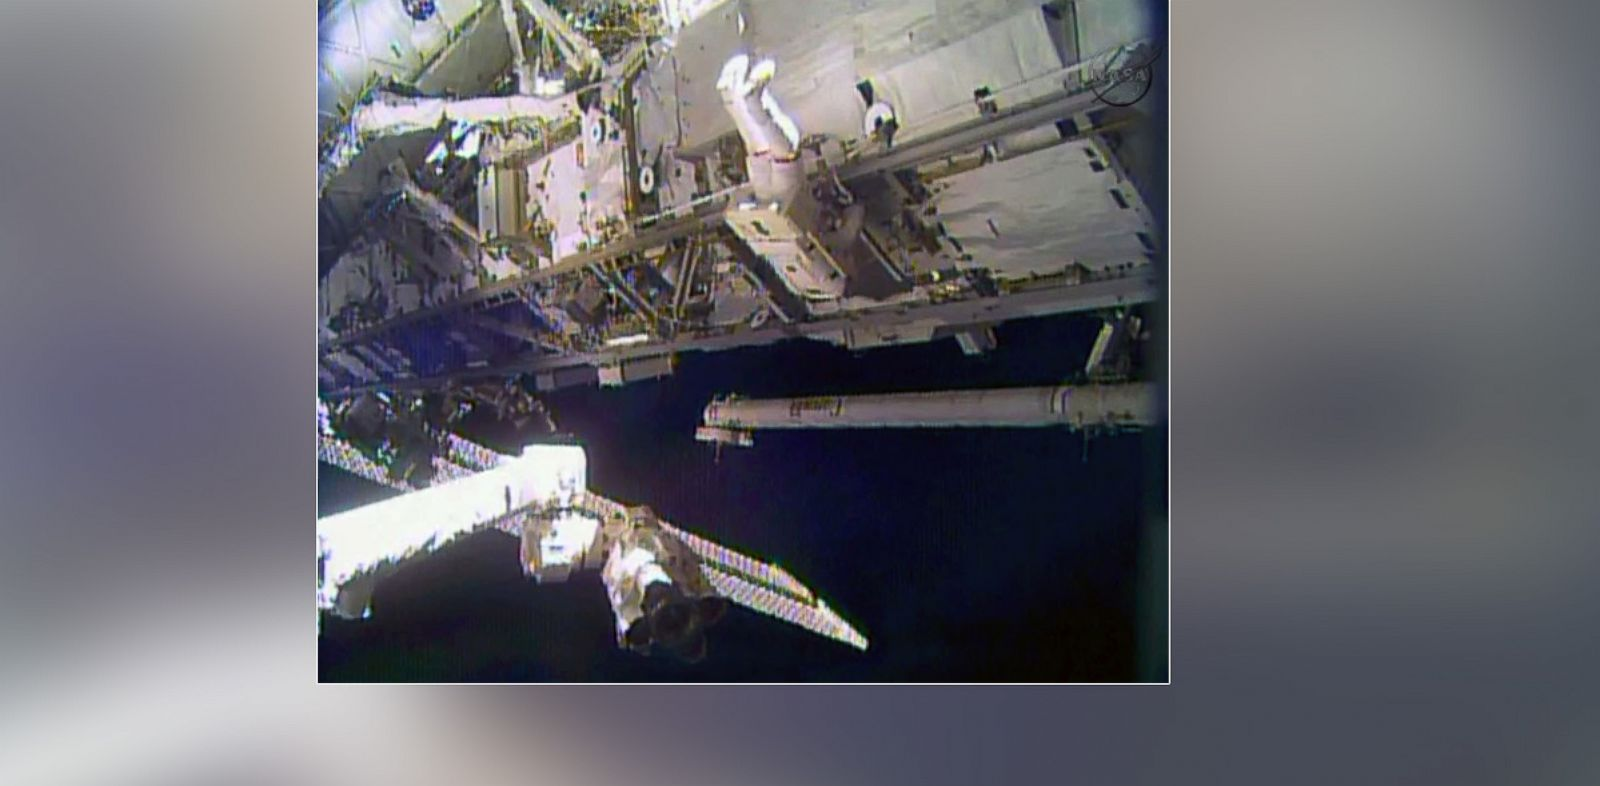 PHOTO: In this image made from video provided by NASA, astronaut Rick Mastracchio performs a space walk outside the International Space Station, Dec. 21, 2013.